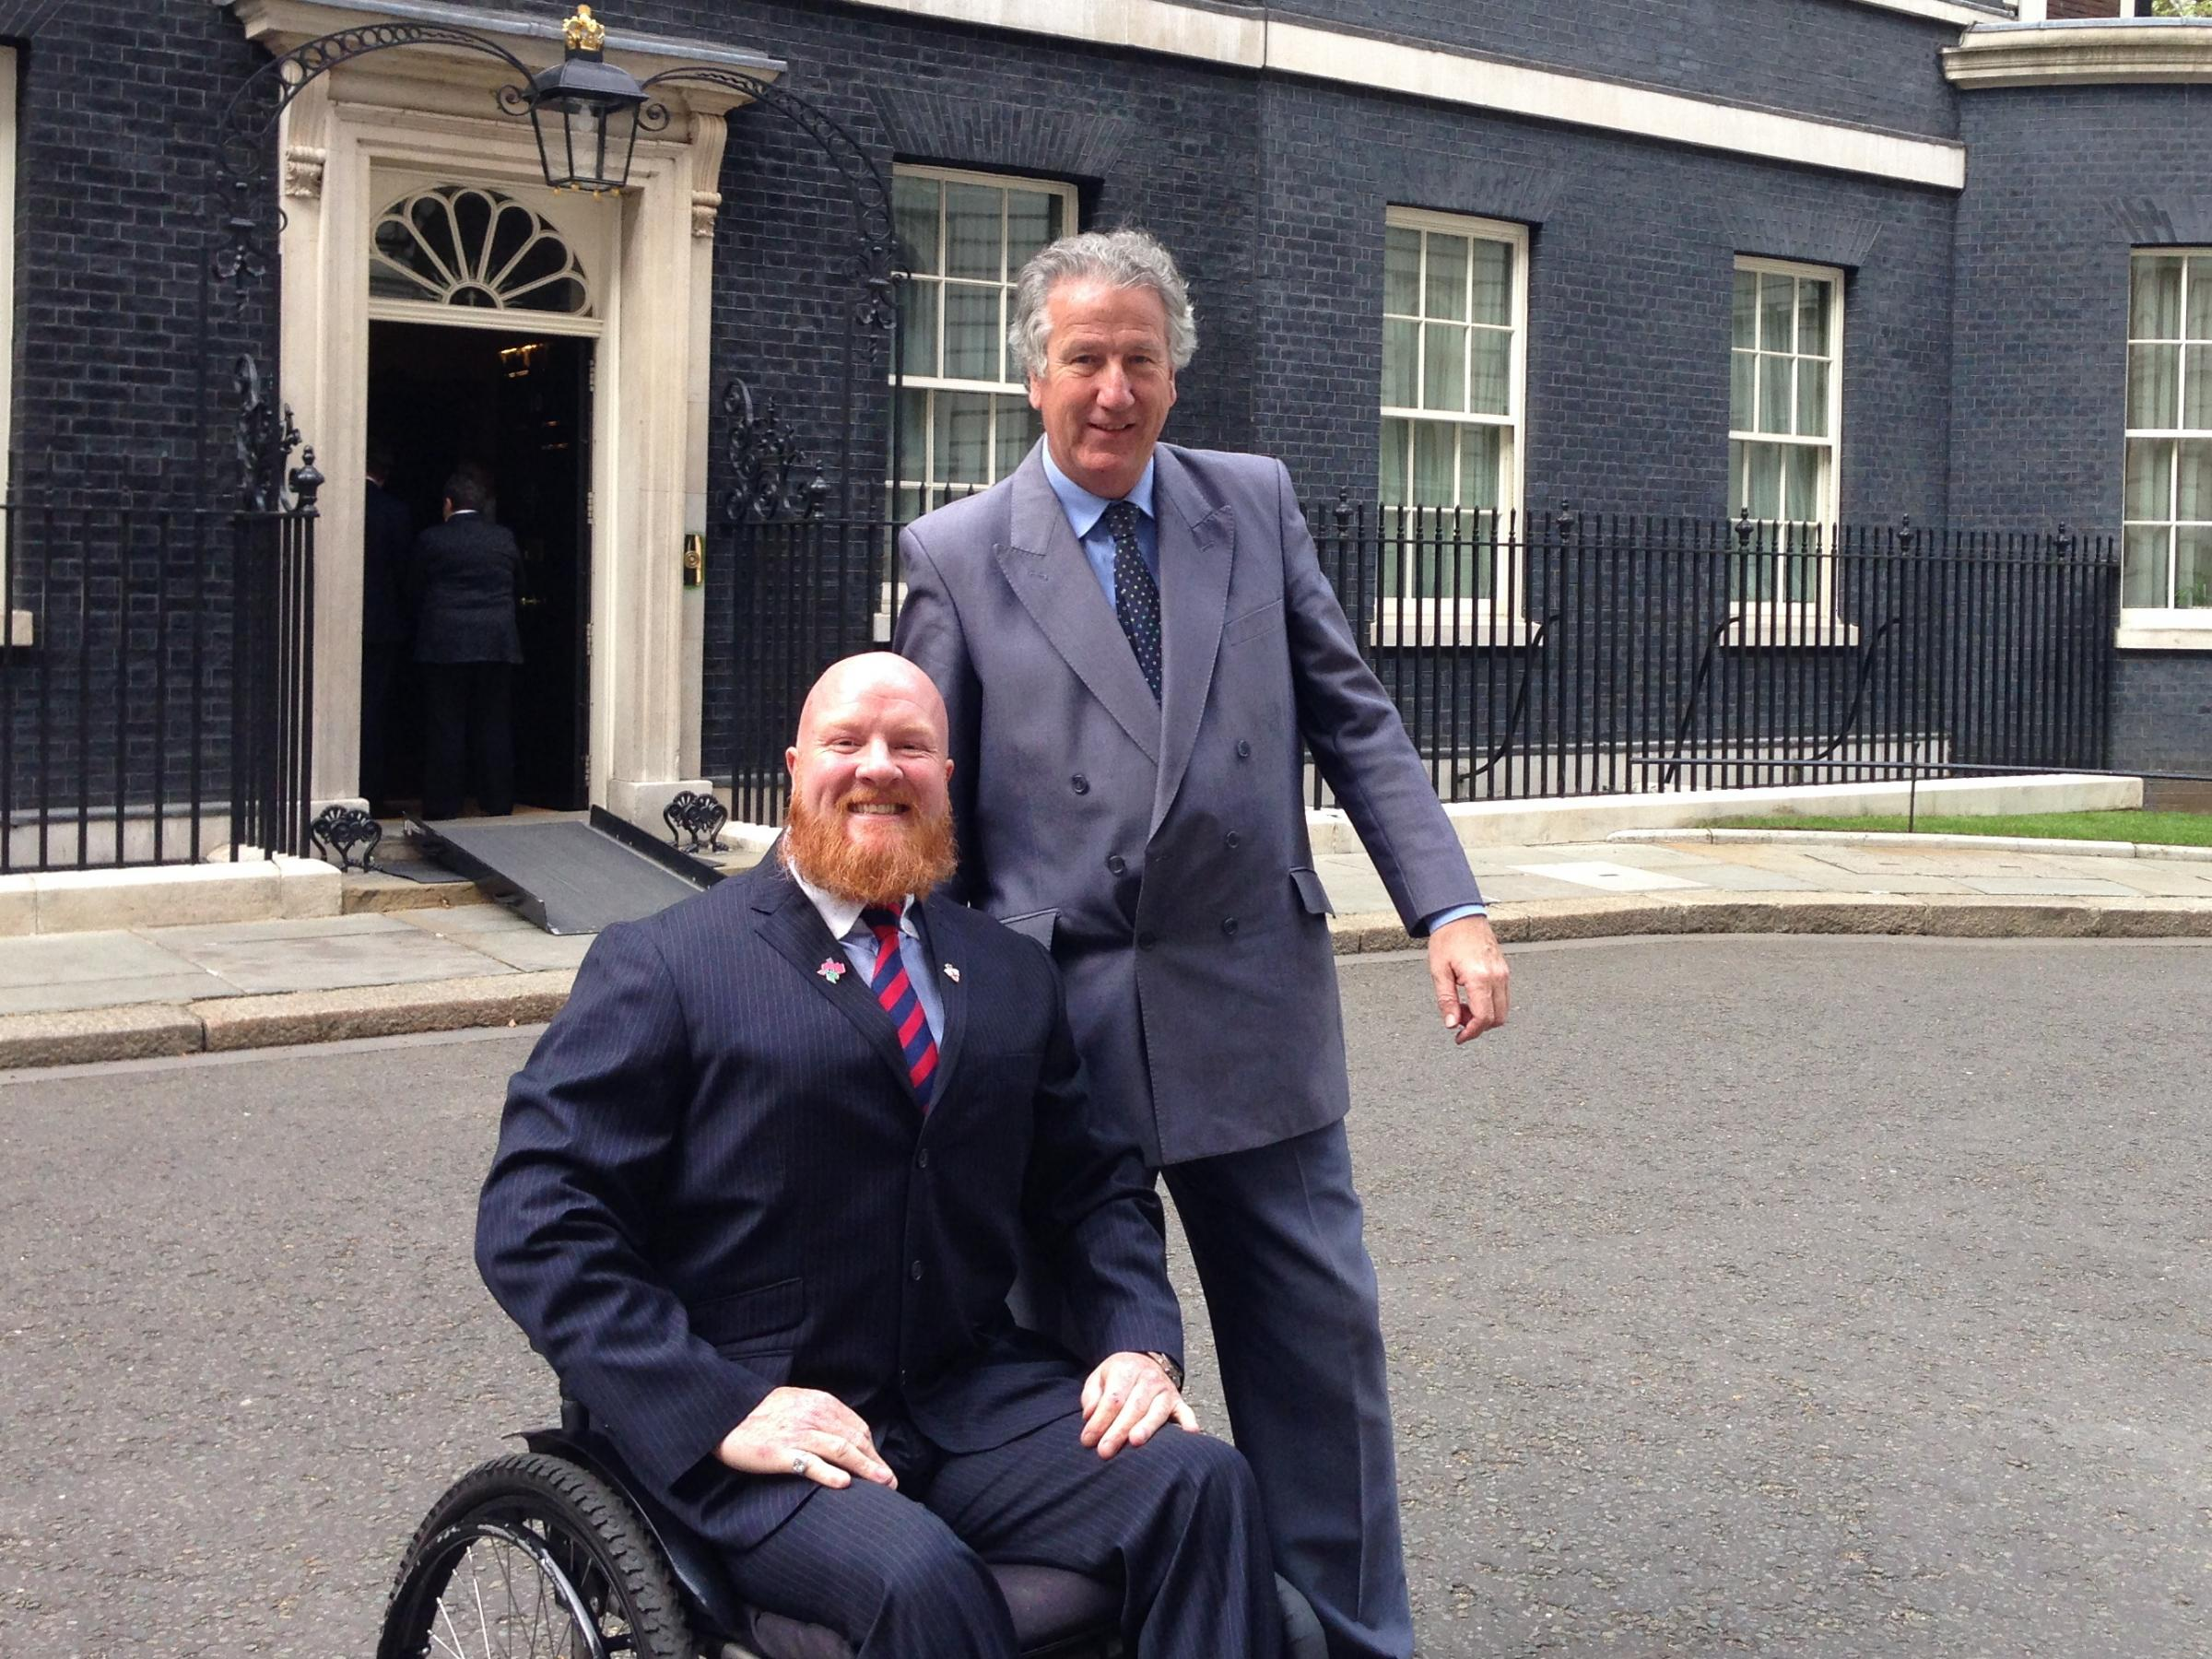 Adrian Derbyshire and David Mowat at 10 Downing Street